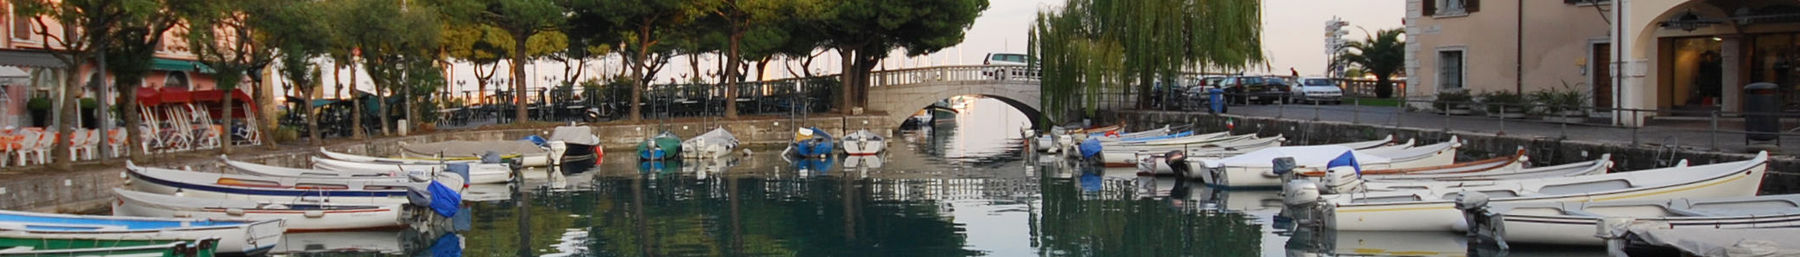 Desenzano del Garda banner Small boat harbour and bridge.jpg